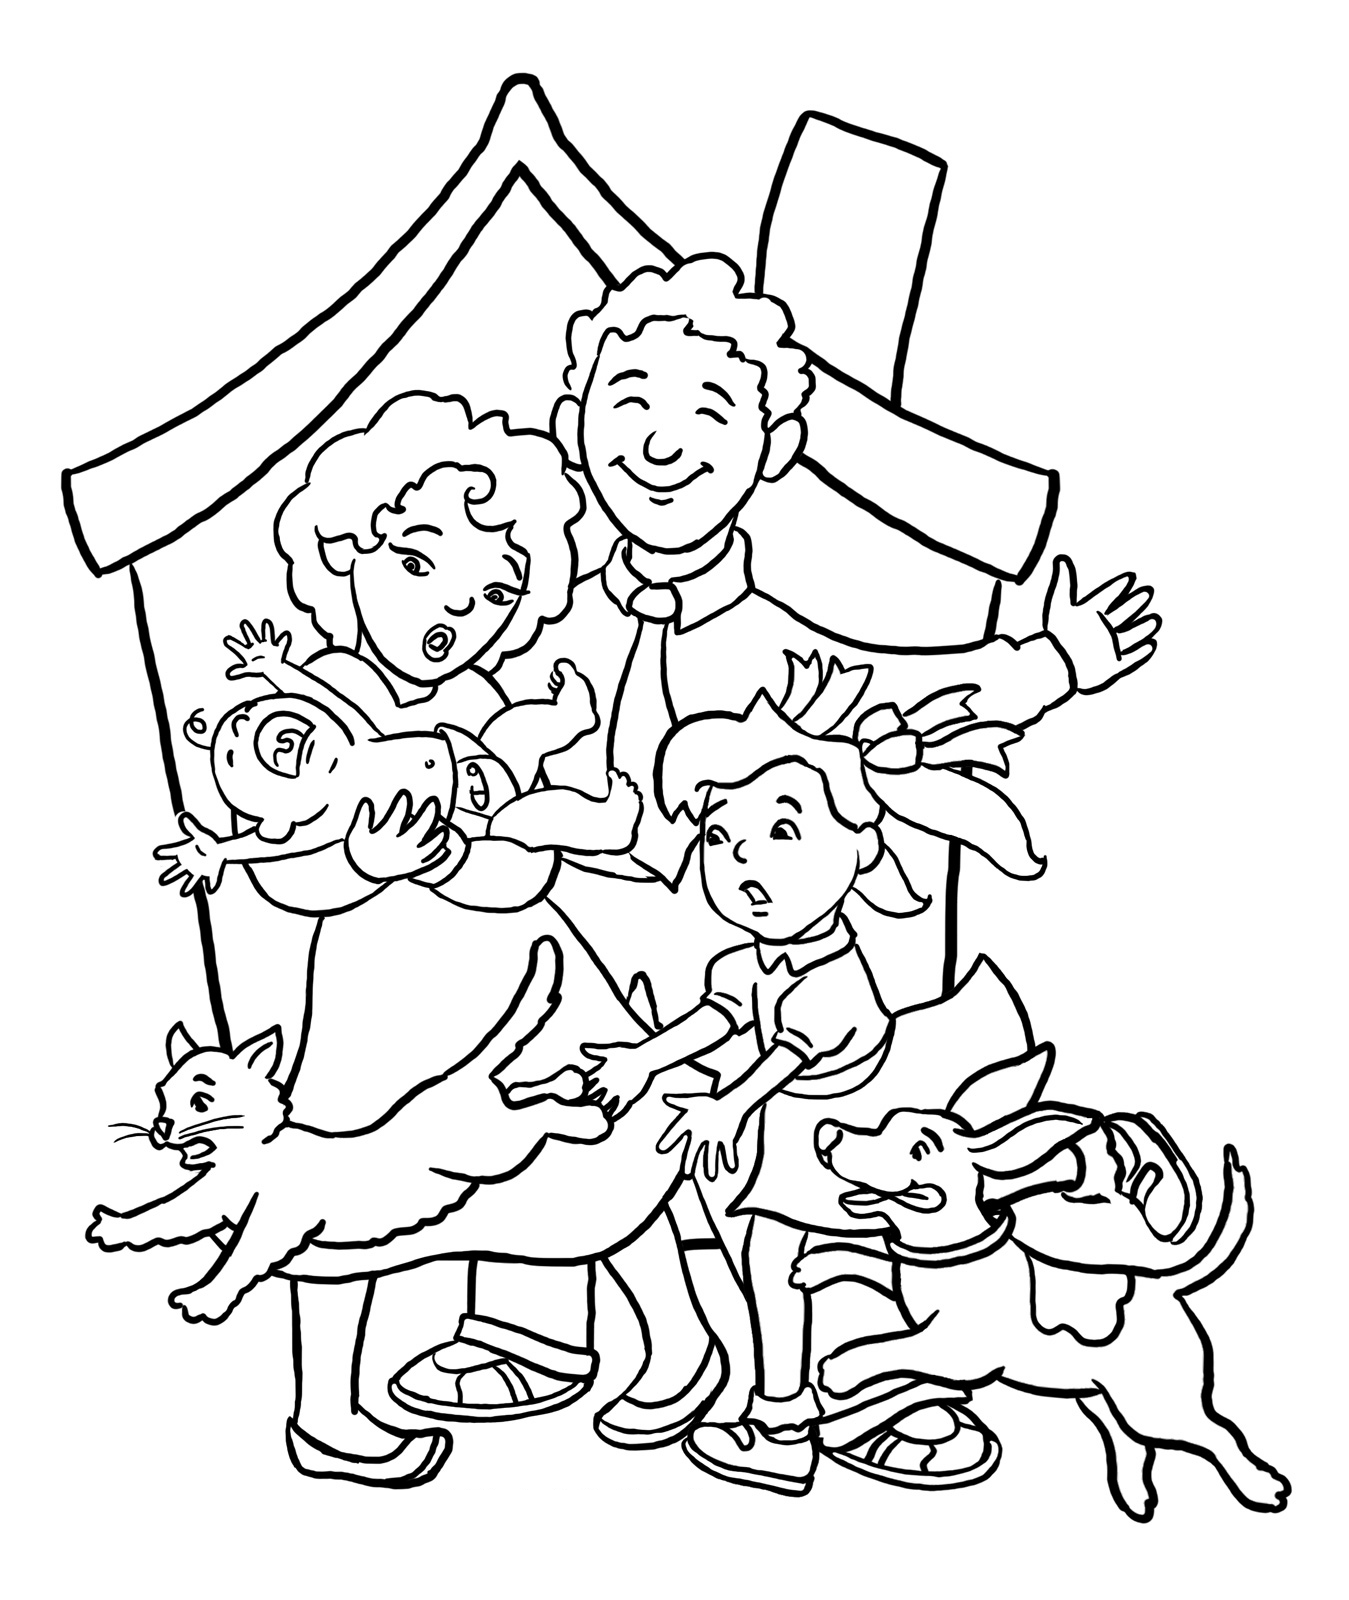 colouring pages family - Google Search | ADVENT for church ...